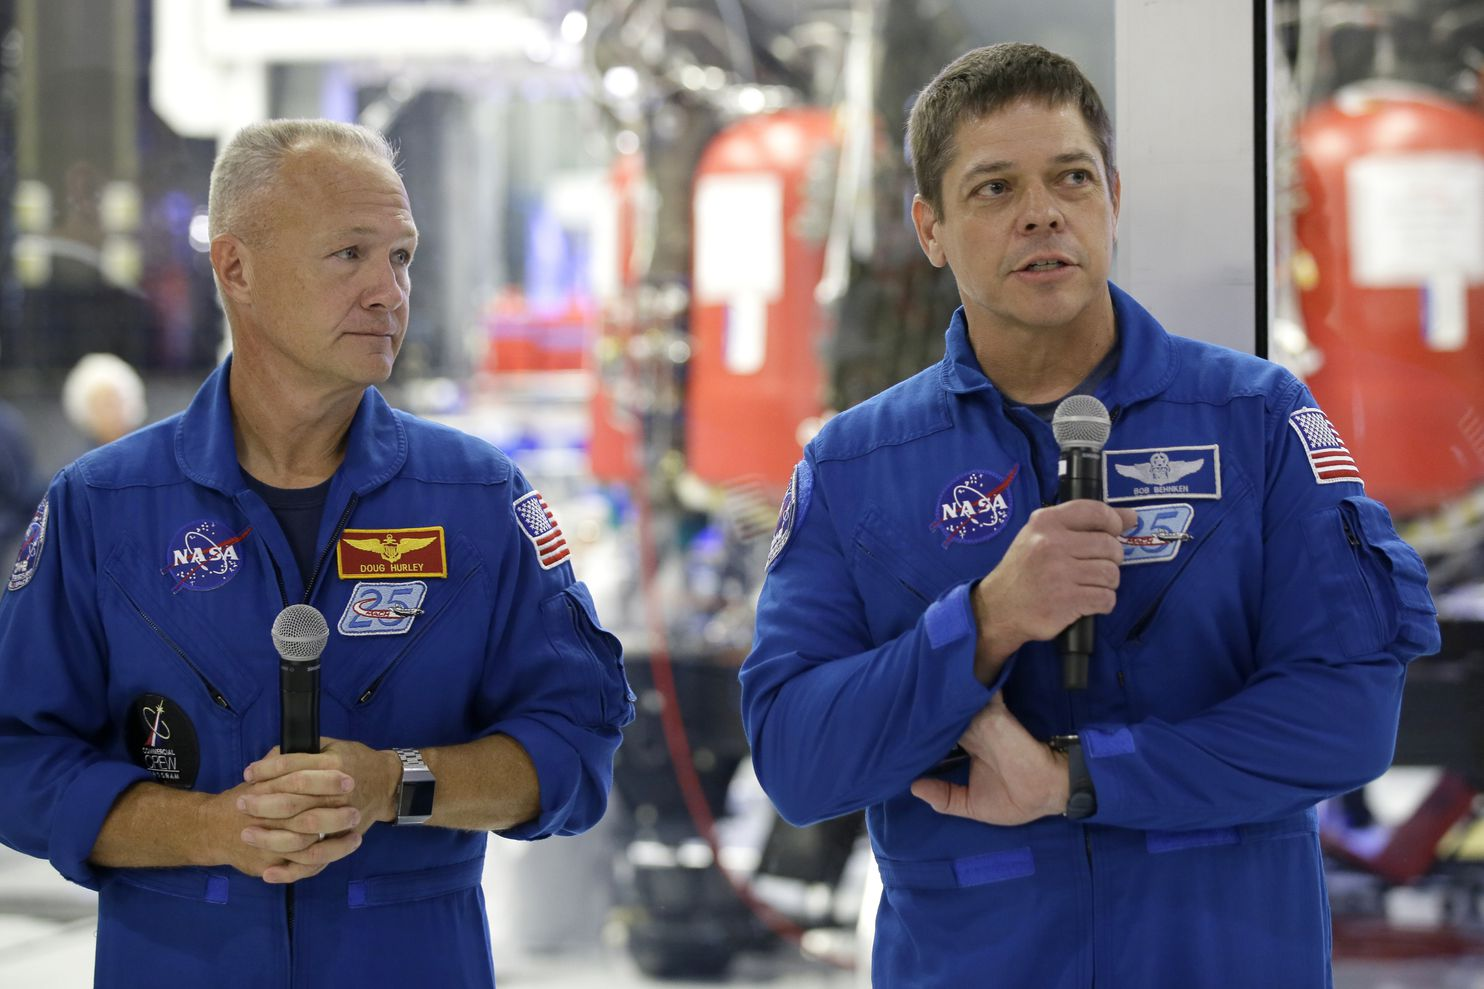 NASA To Send Americans To Space For The First Time In A Decade